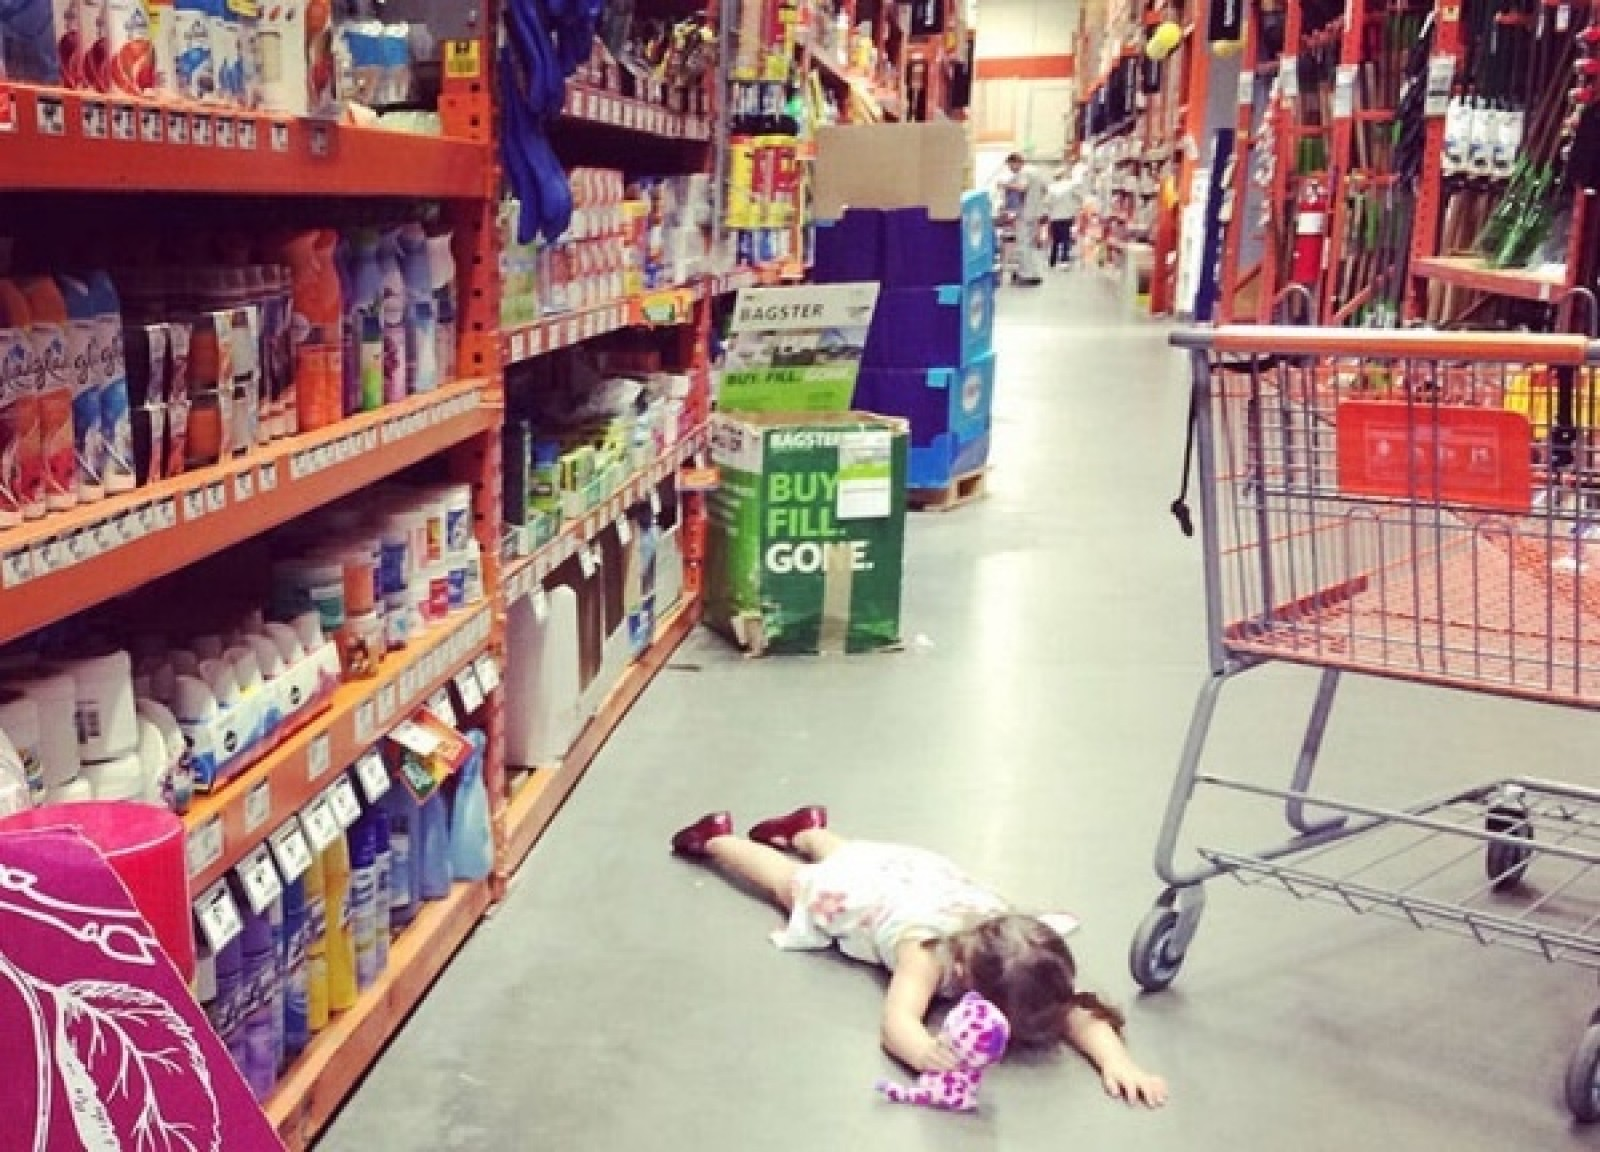 young_girl_laying_on_a_floor_at_a_store.jpg